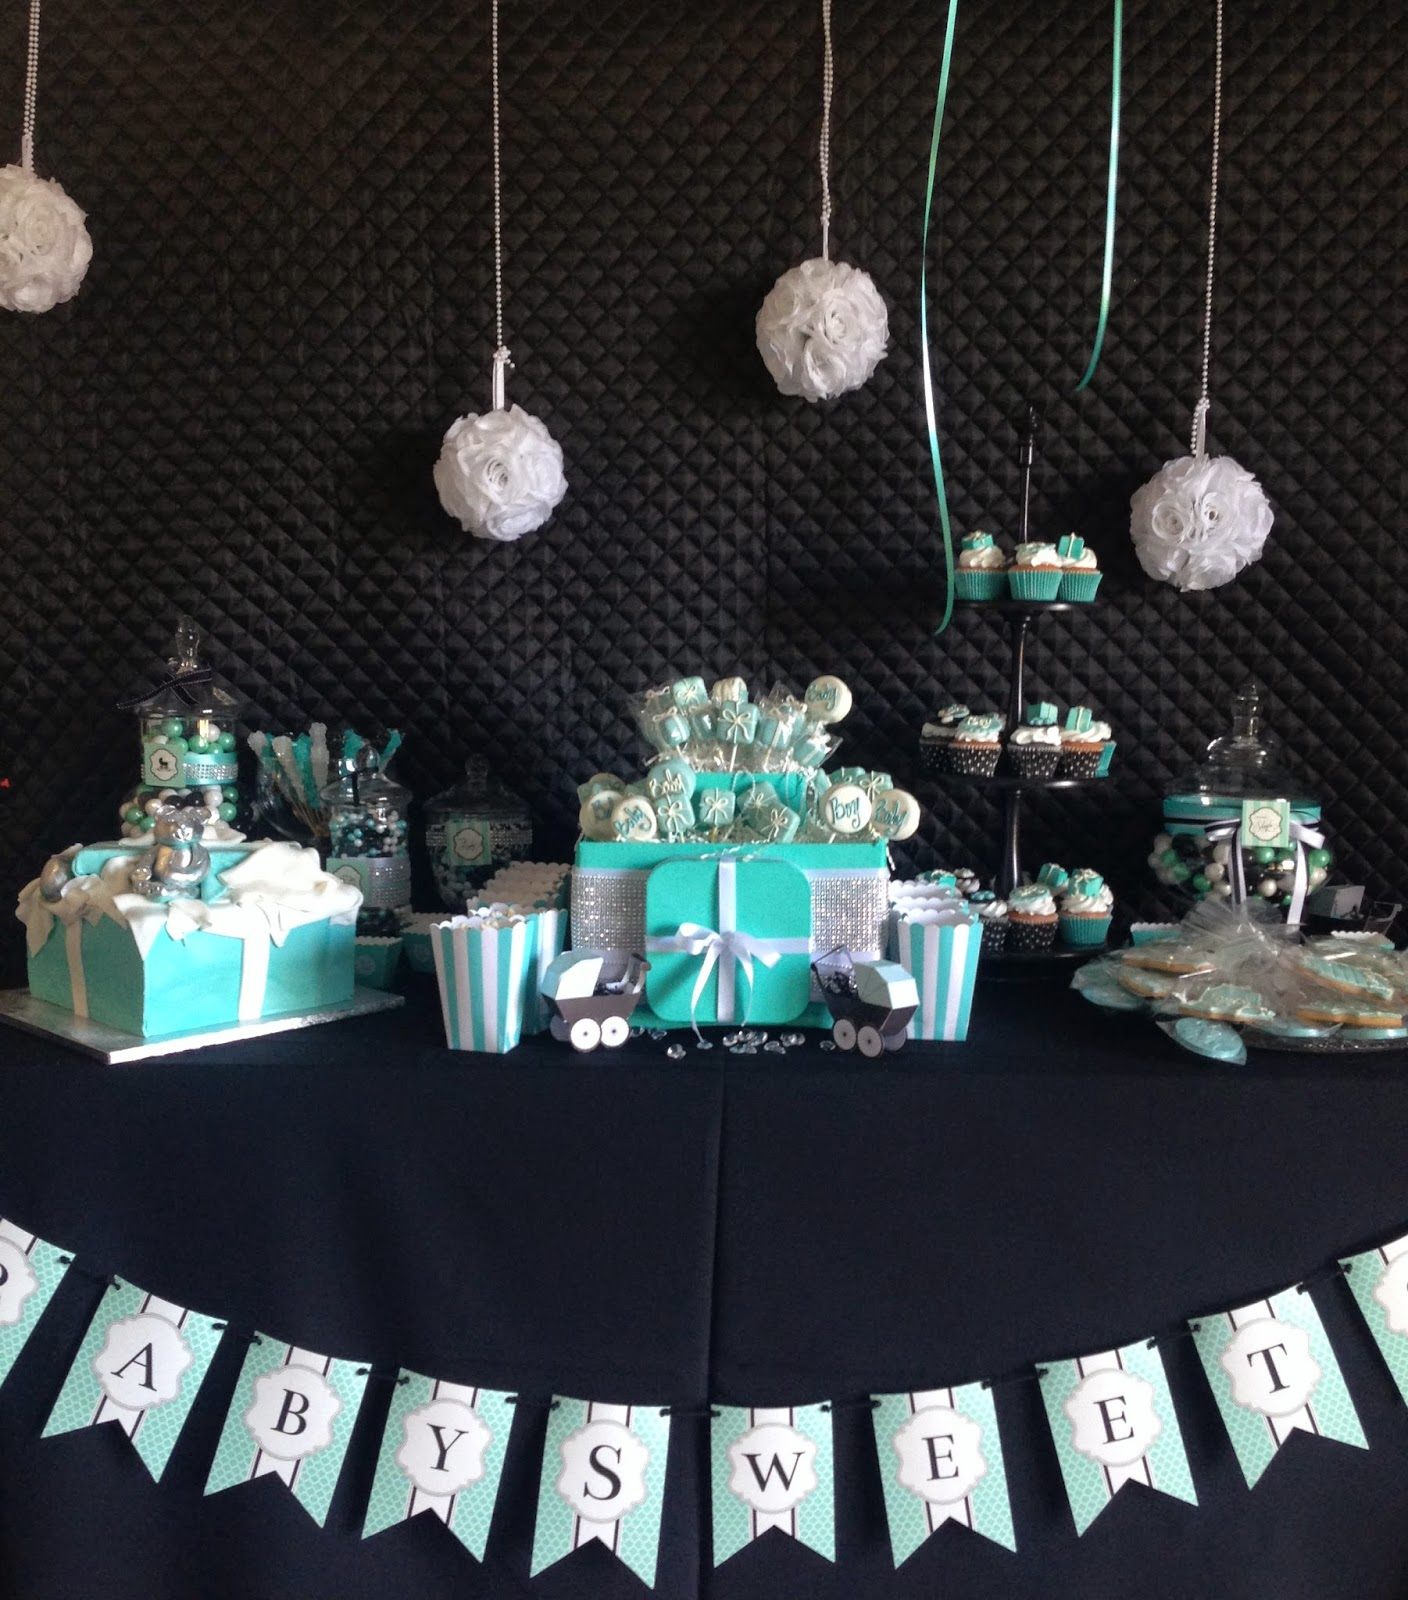 candy station, pomander balls, apothecary jars, allthingsslim, baby shower, party inspiration